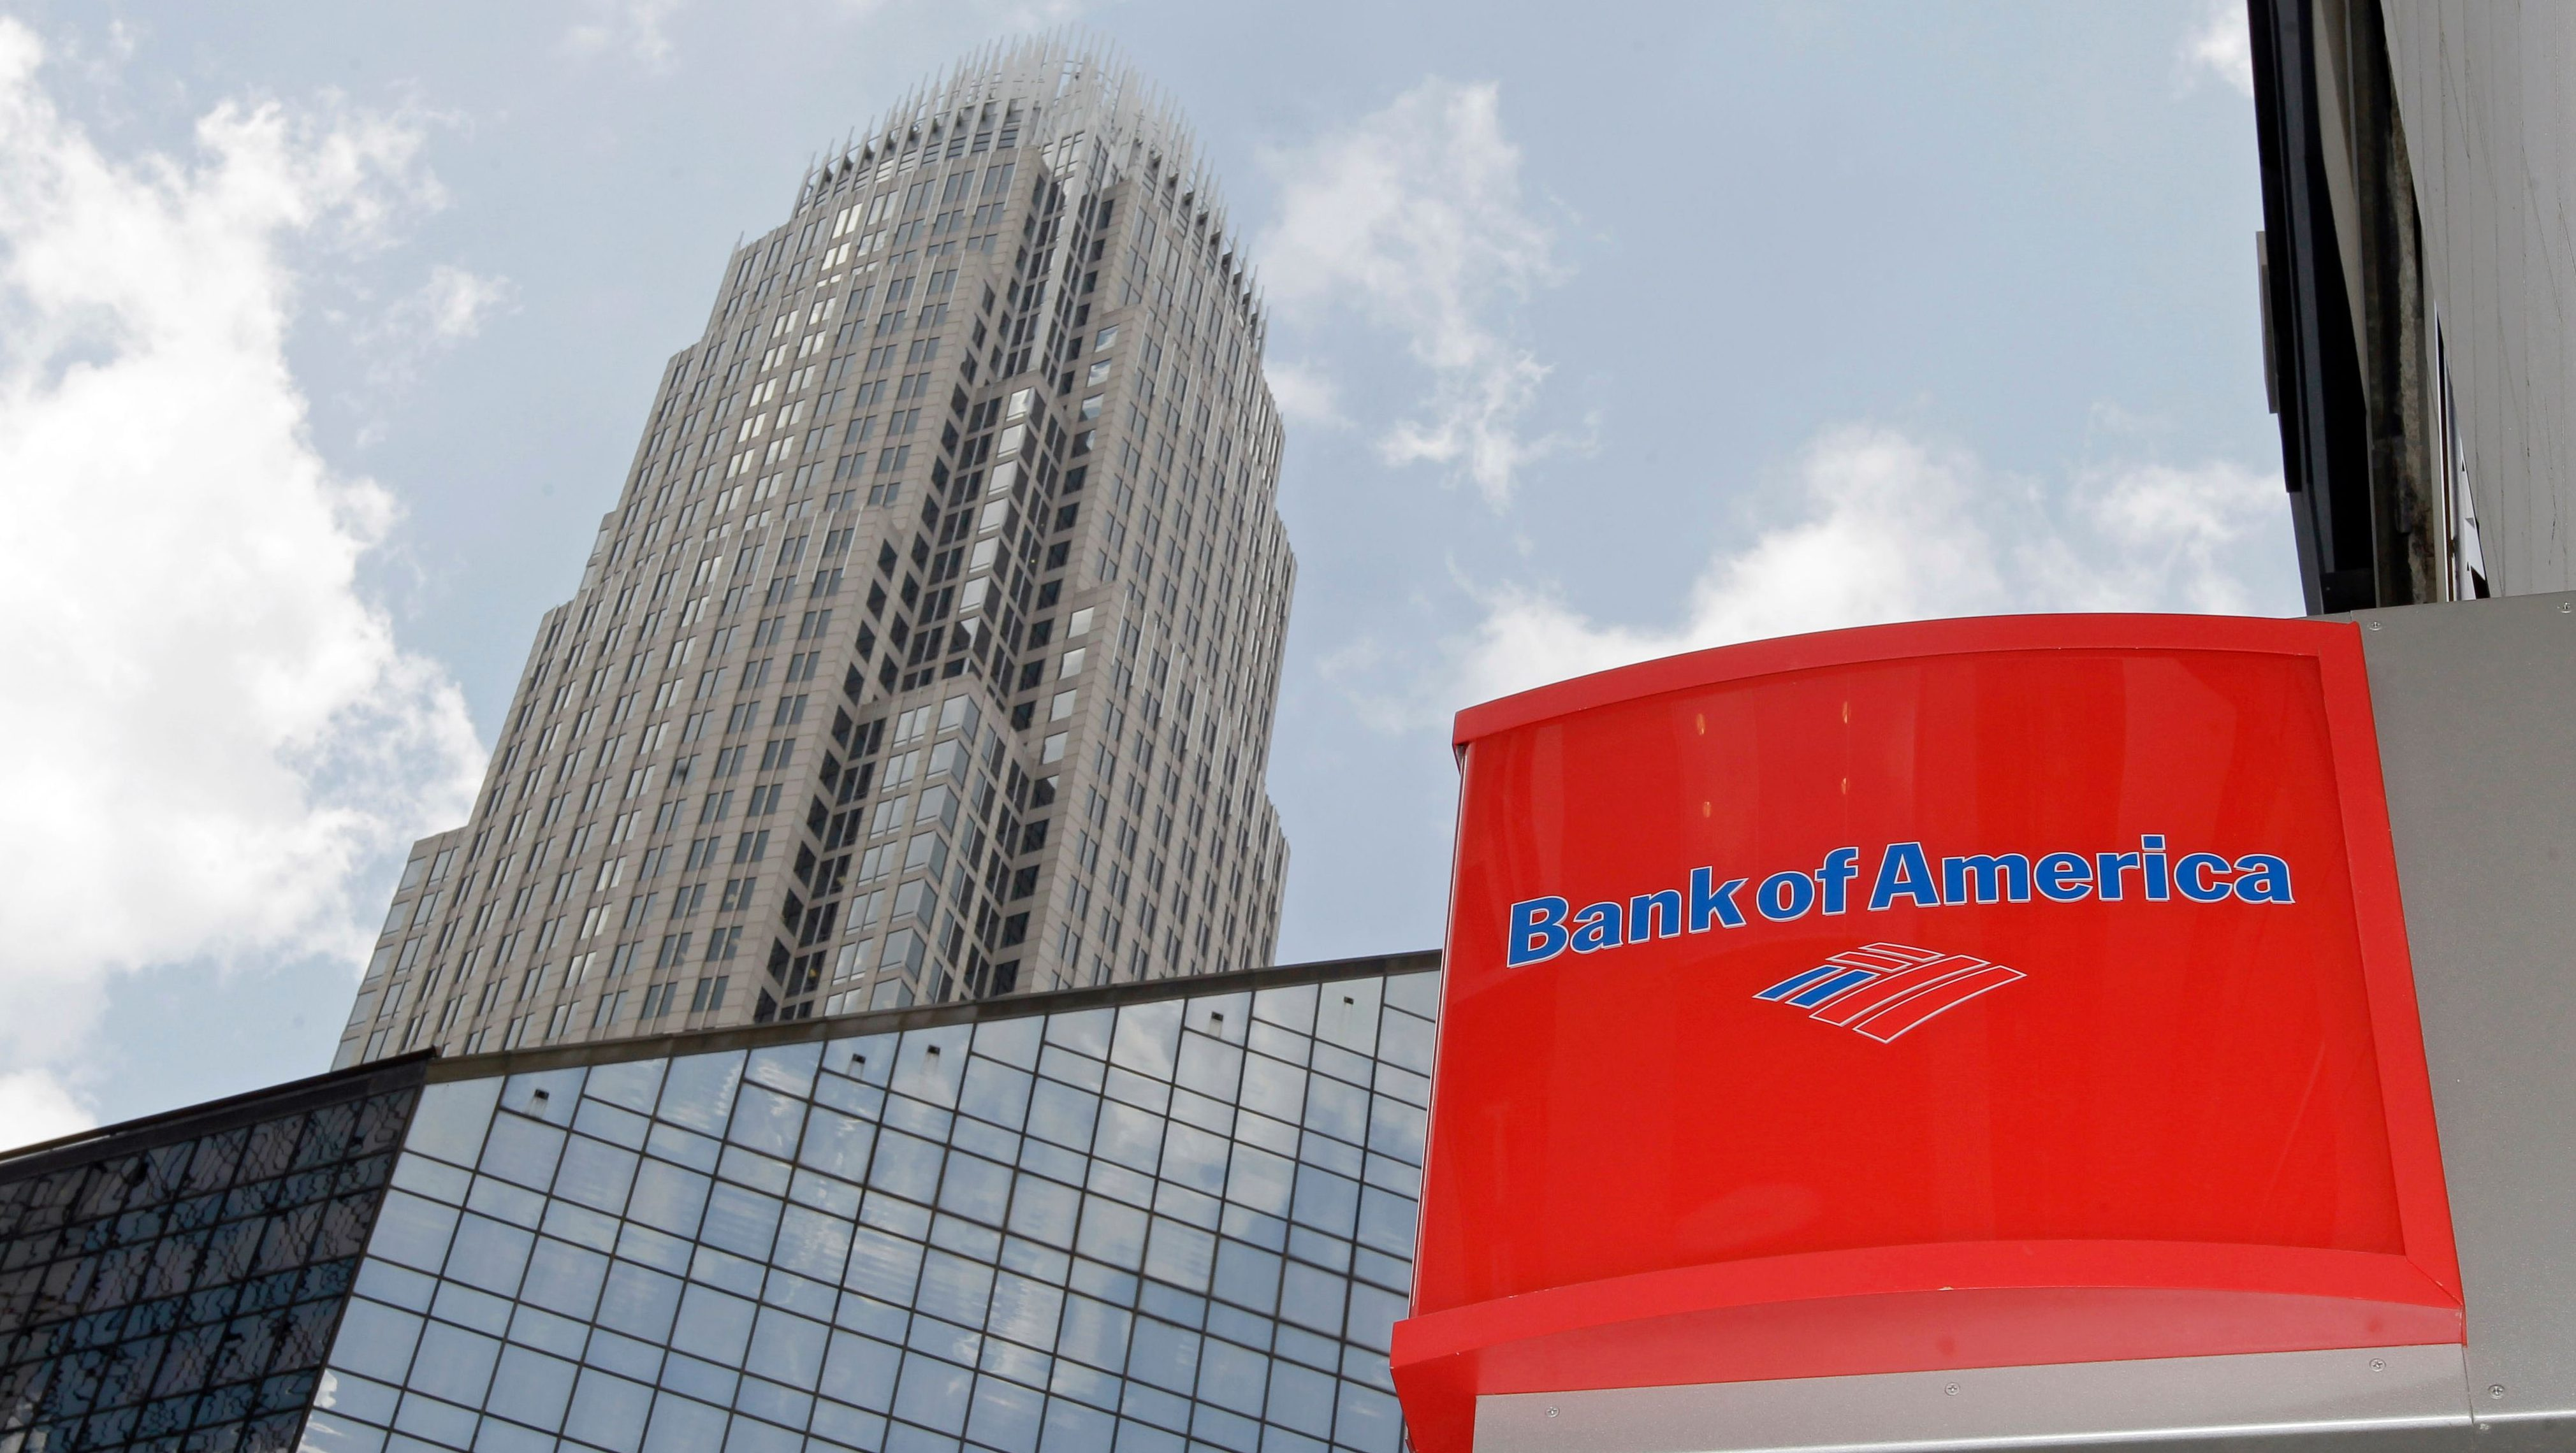 Bank of America's headquarters are shown in Charlotte, N.C.